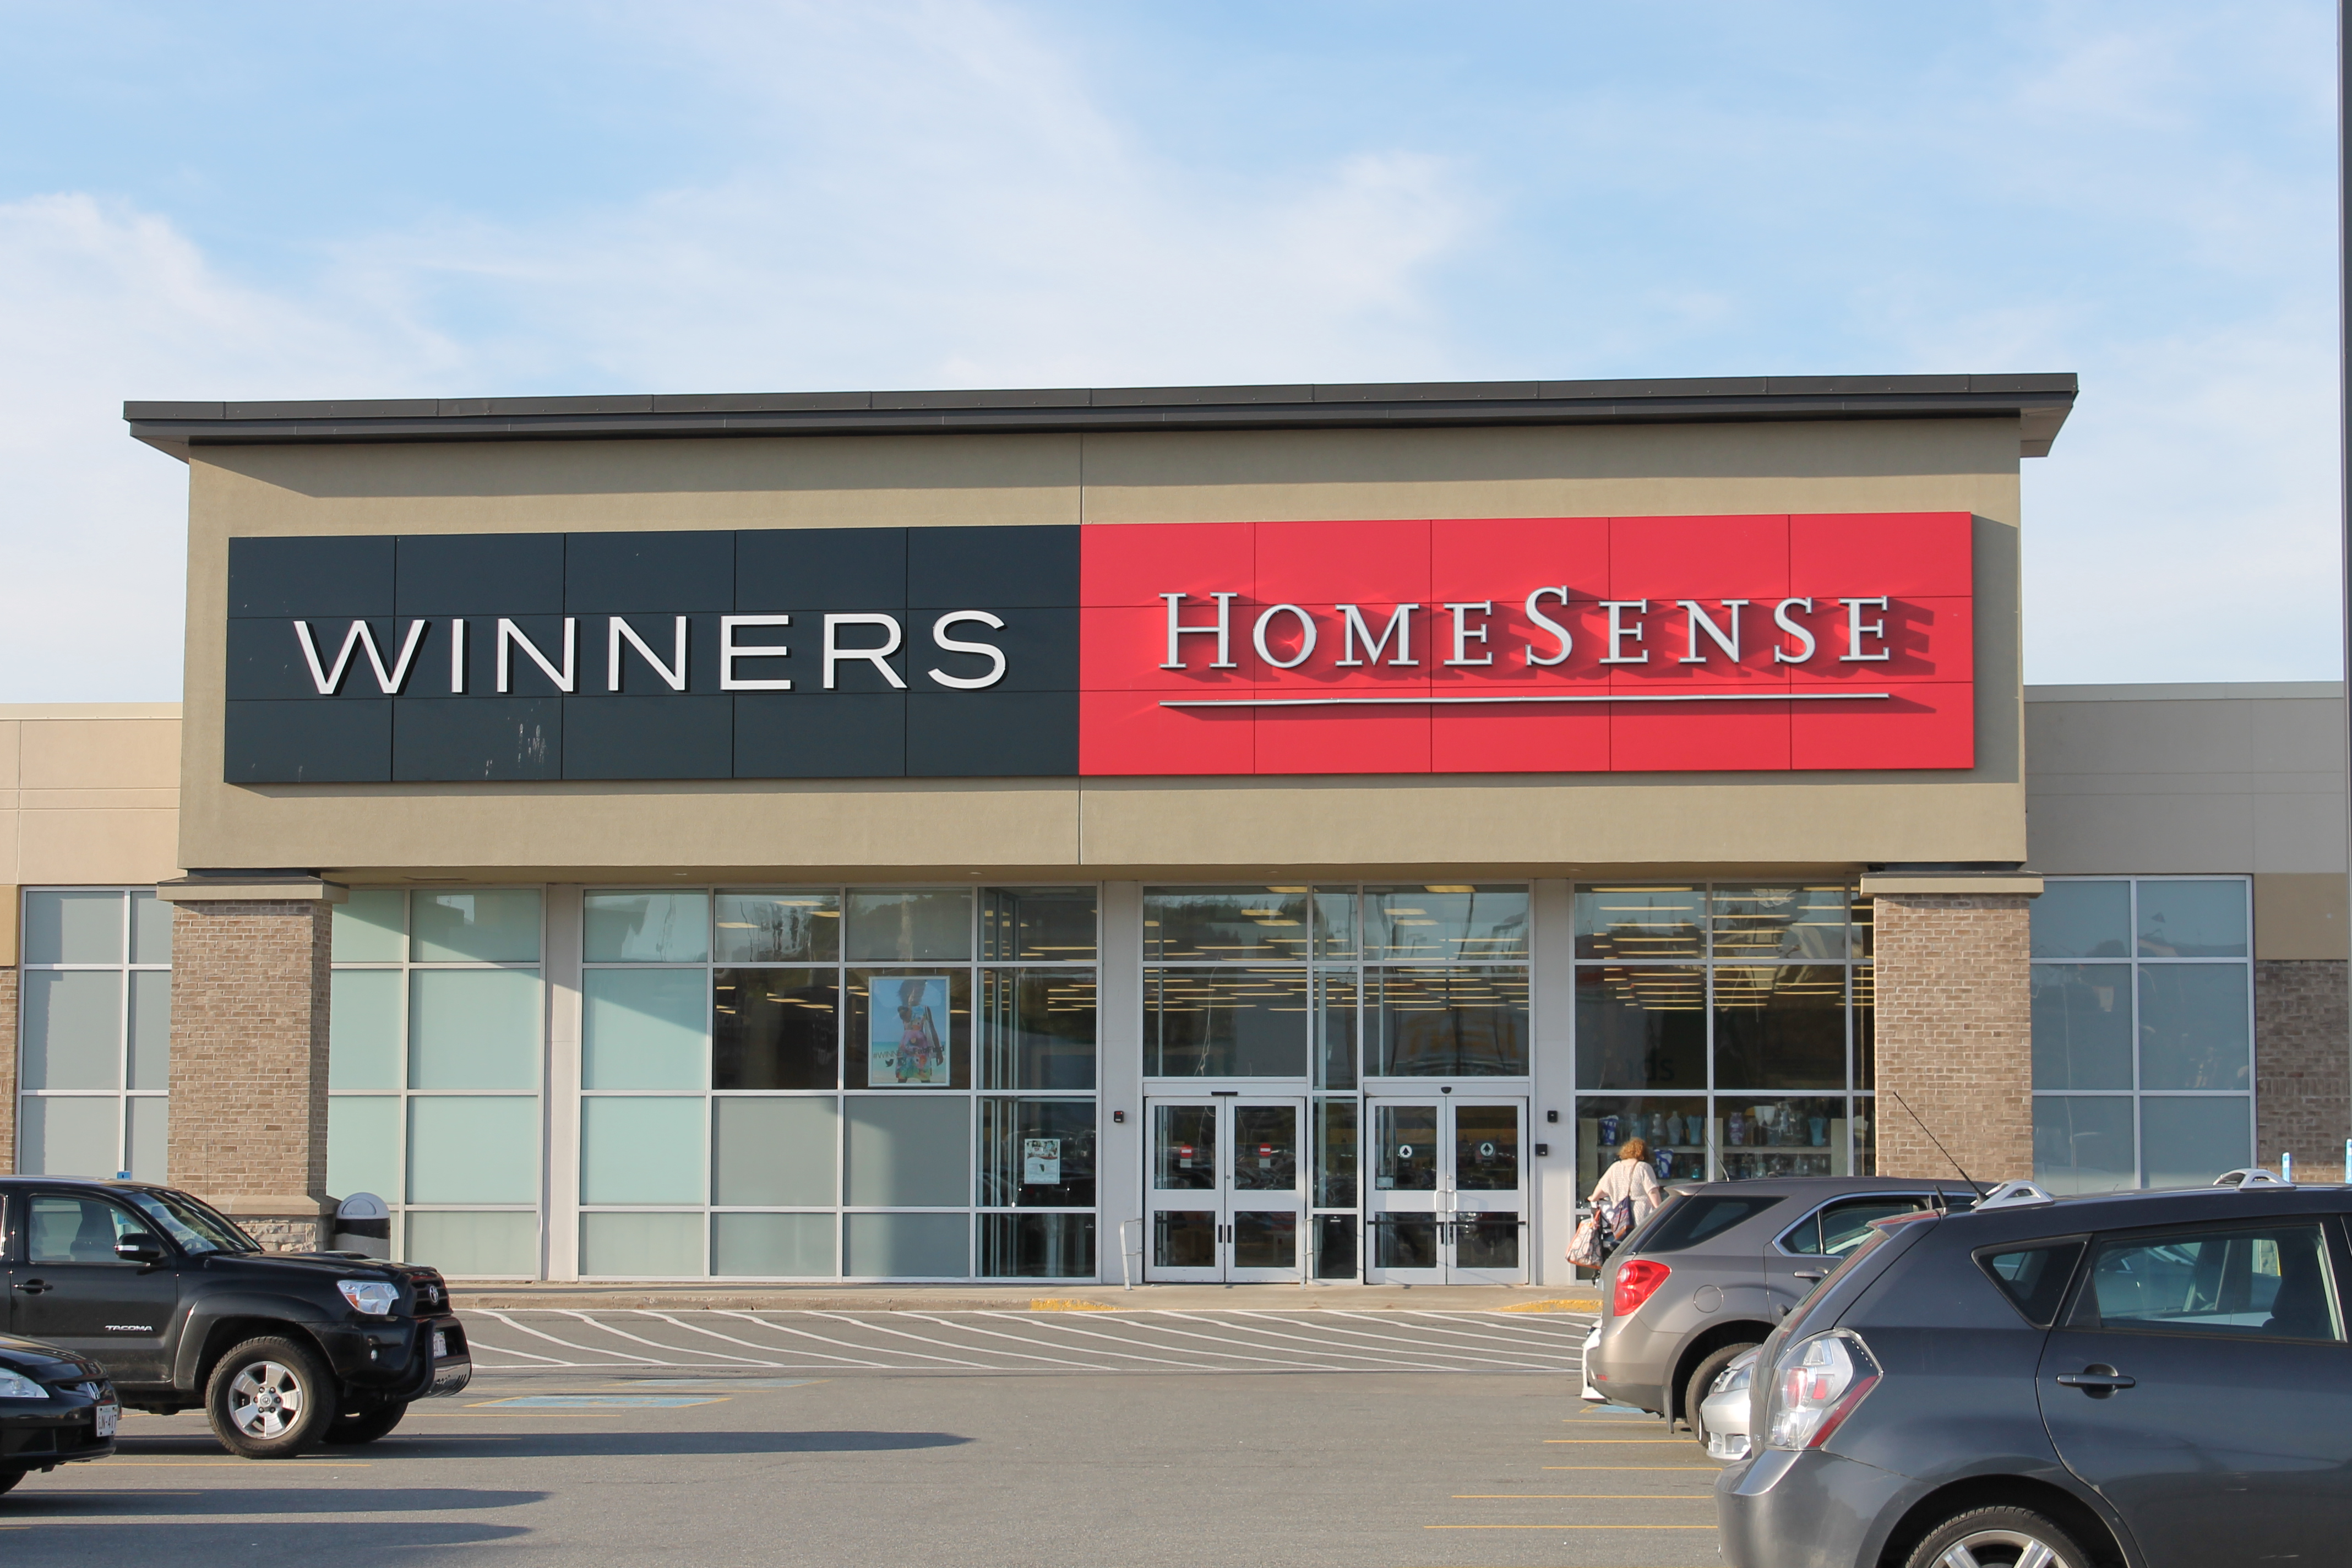 Winners Homesense